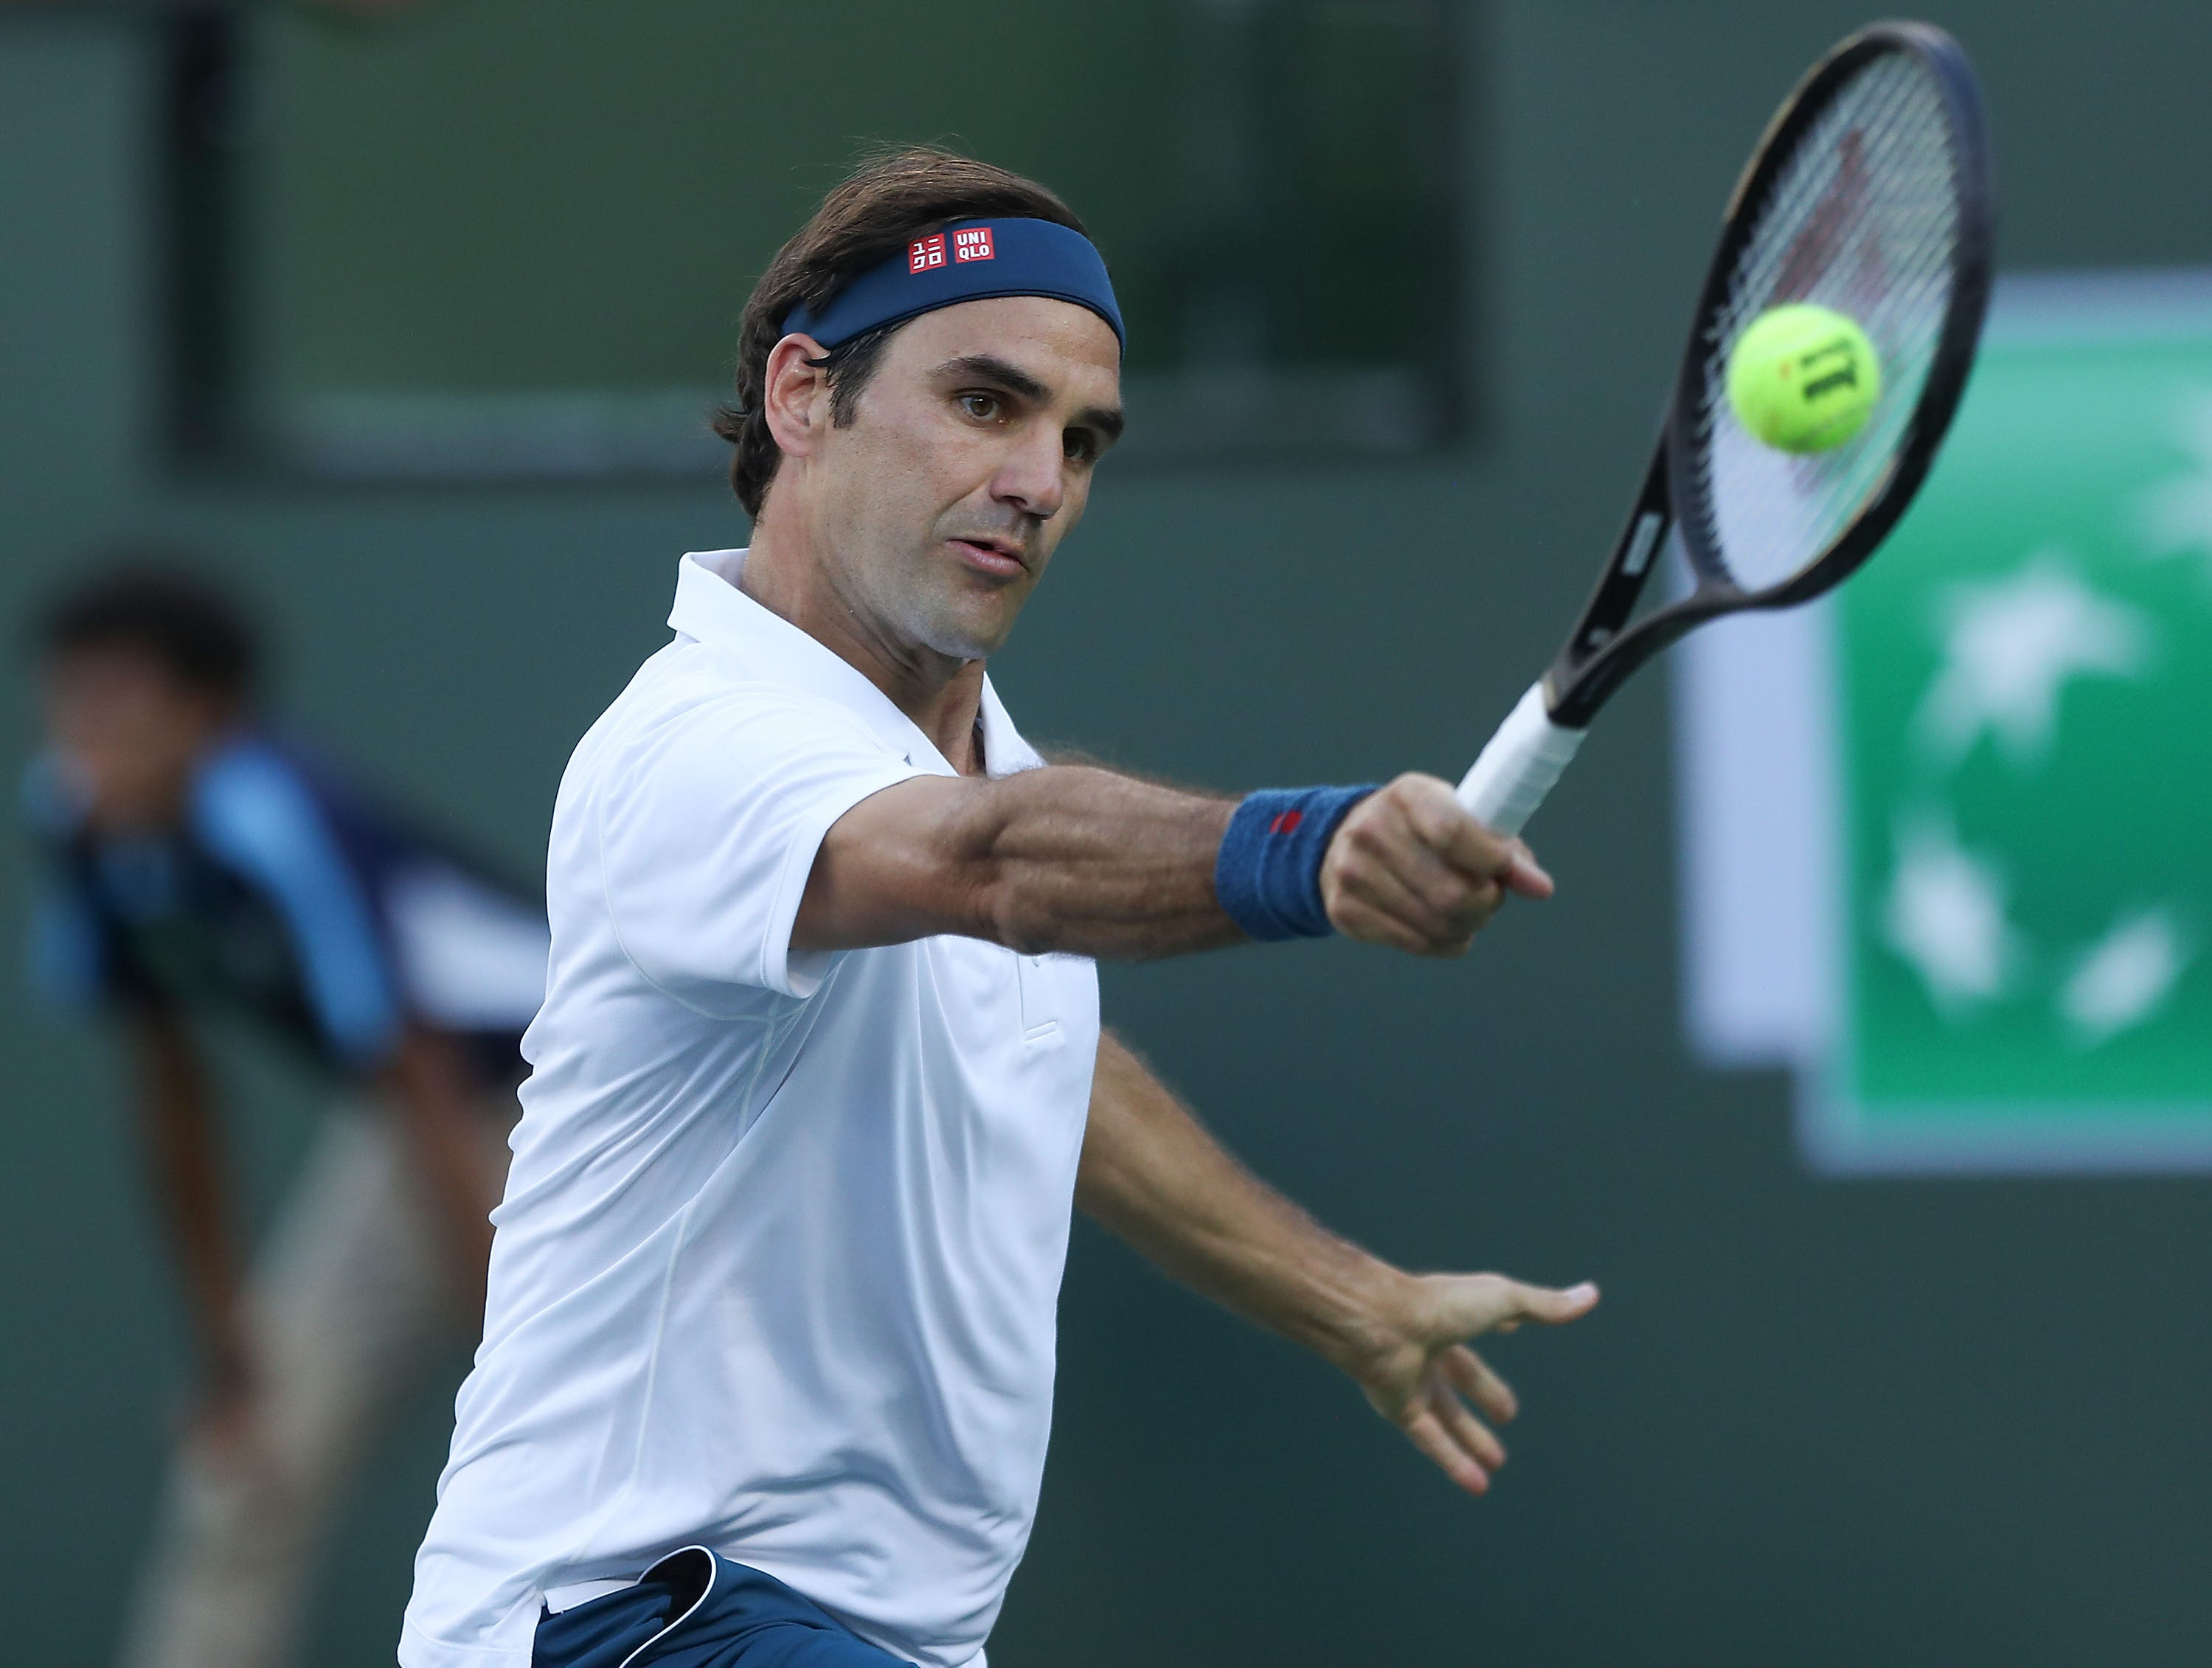 Roger Federer hits a shot during his loss to Dominic Thiem during the Paribas Open final in Indian Wells, March 17, 2019.